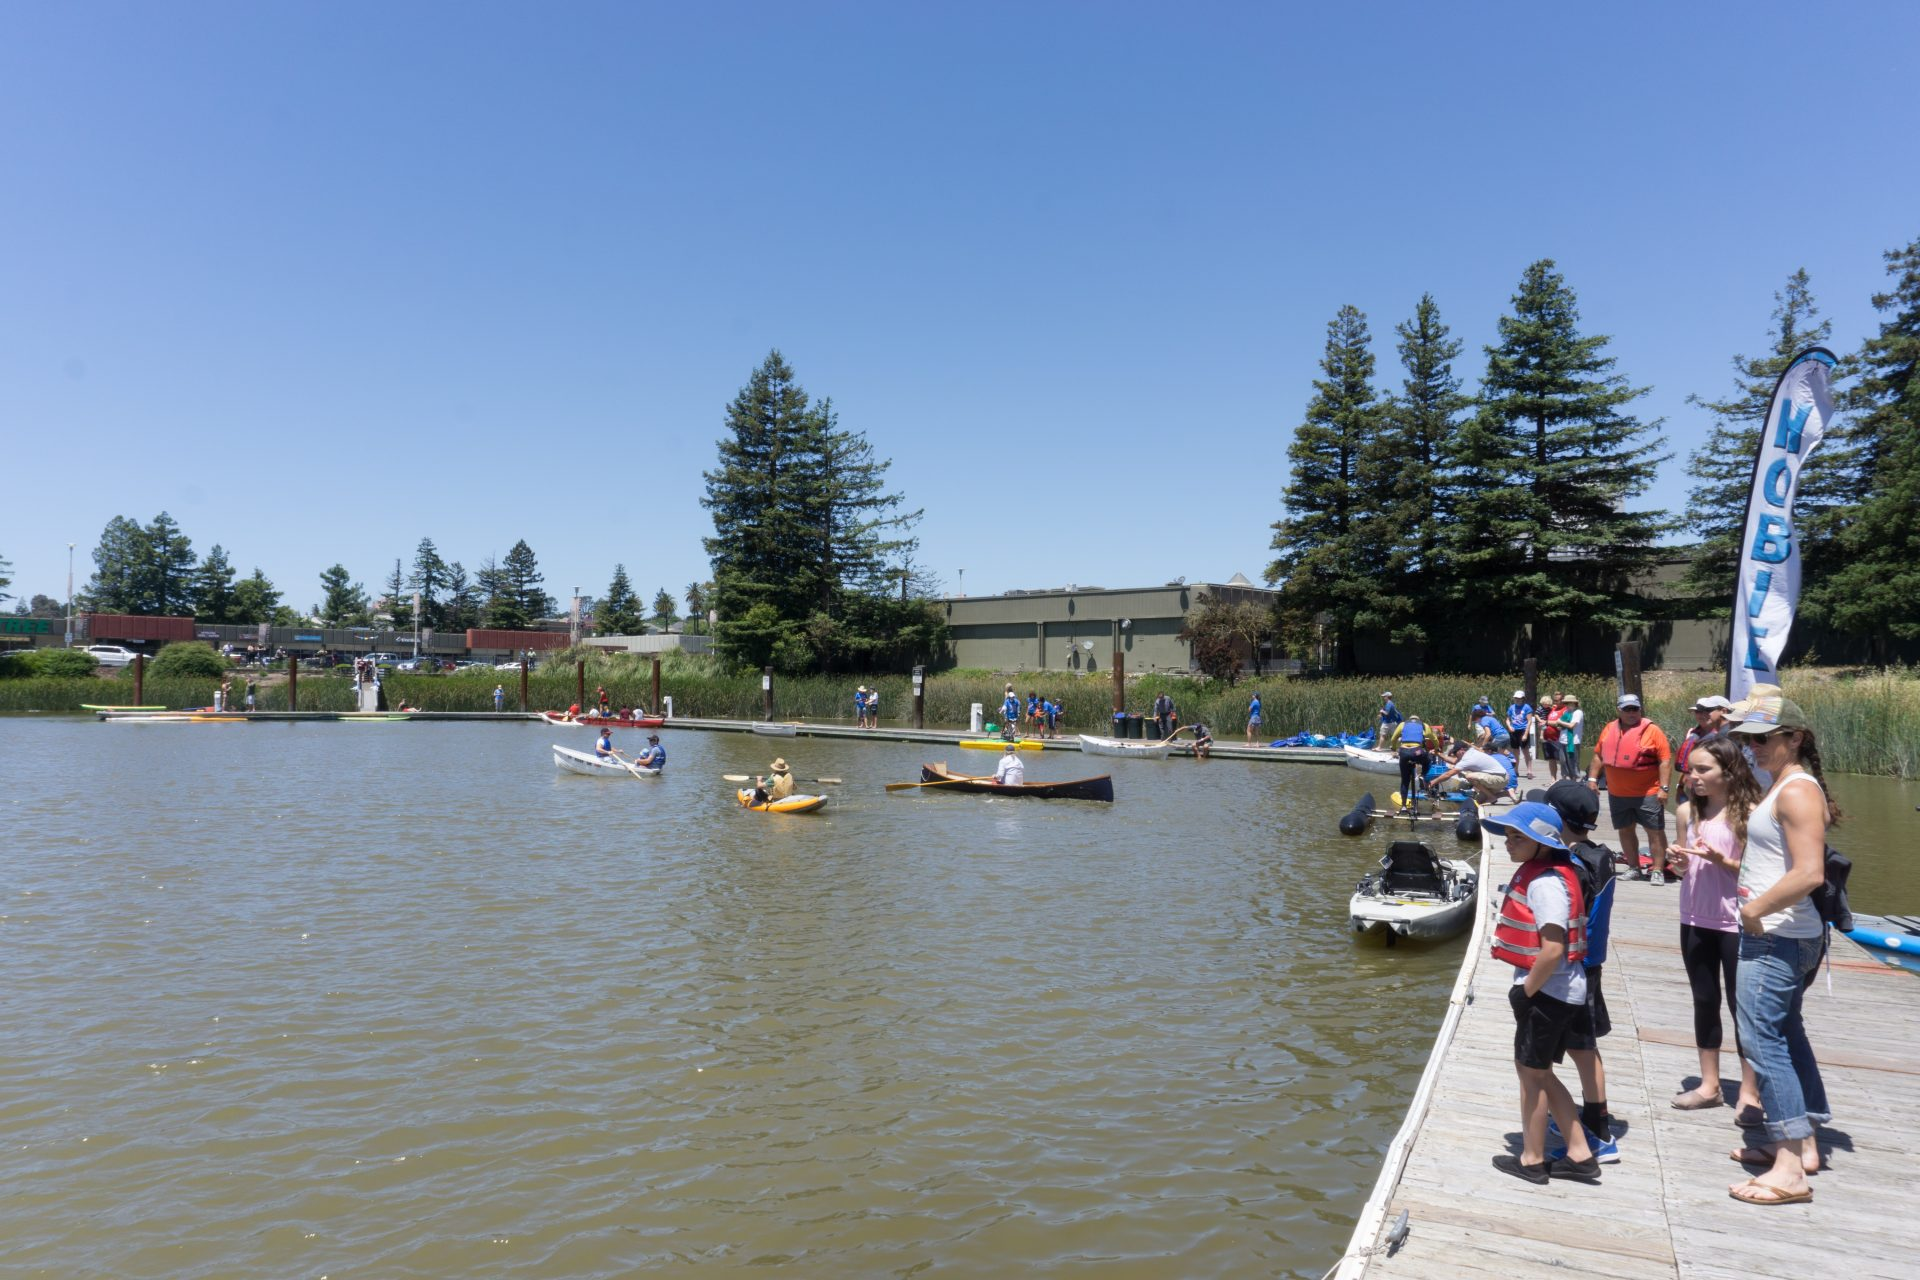 People standing on dock along right, looking out on water with several kayakers